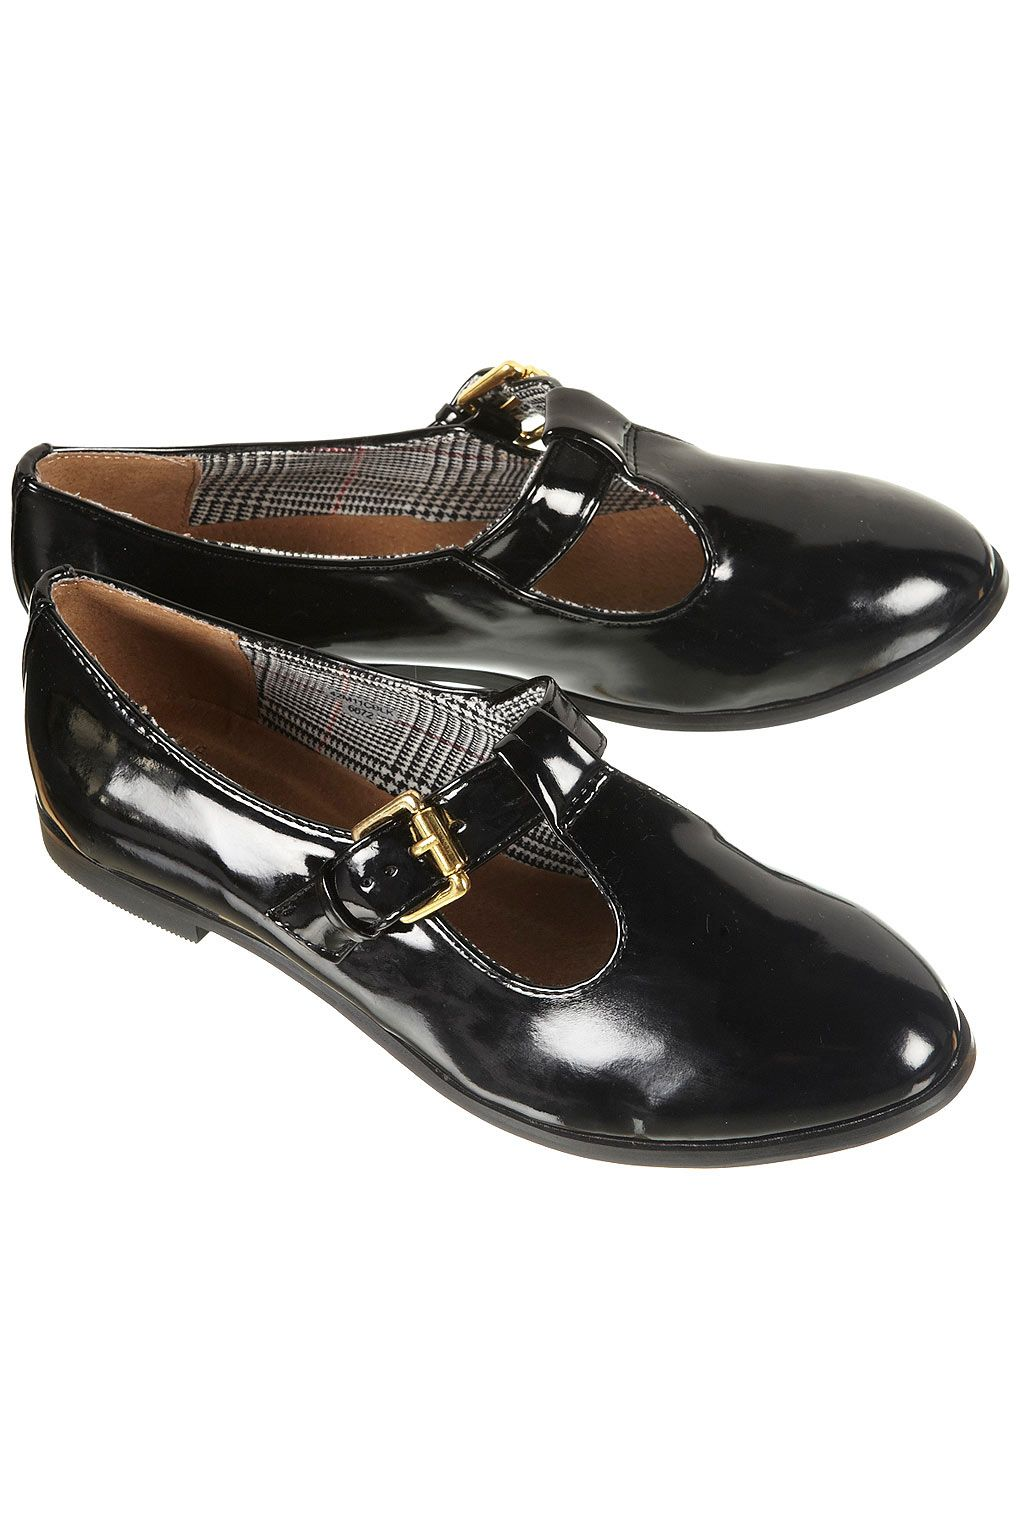 ts maybe black patent t-bar shoes. love t-bar shoes!